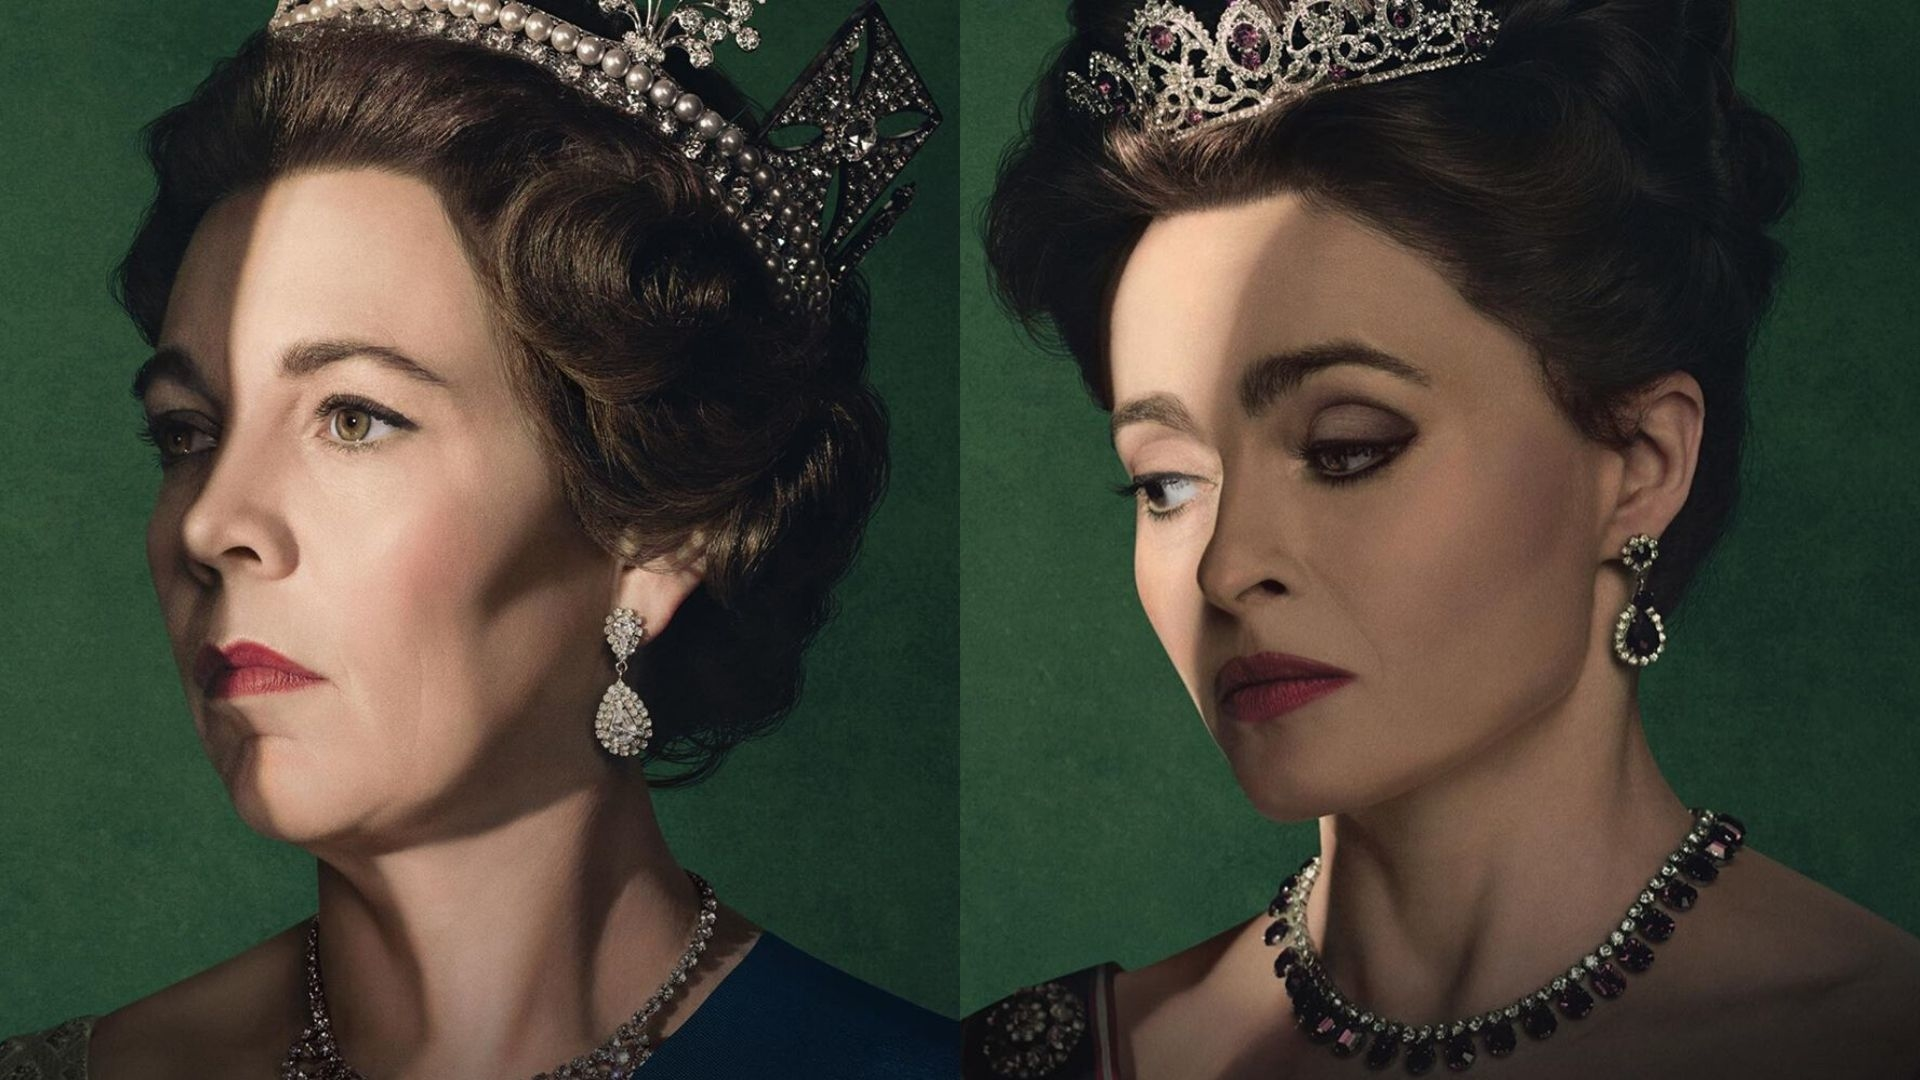 The Crown Season 3: Everything We Know